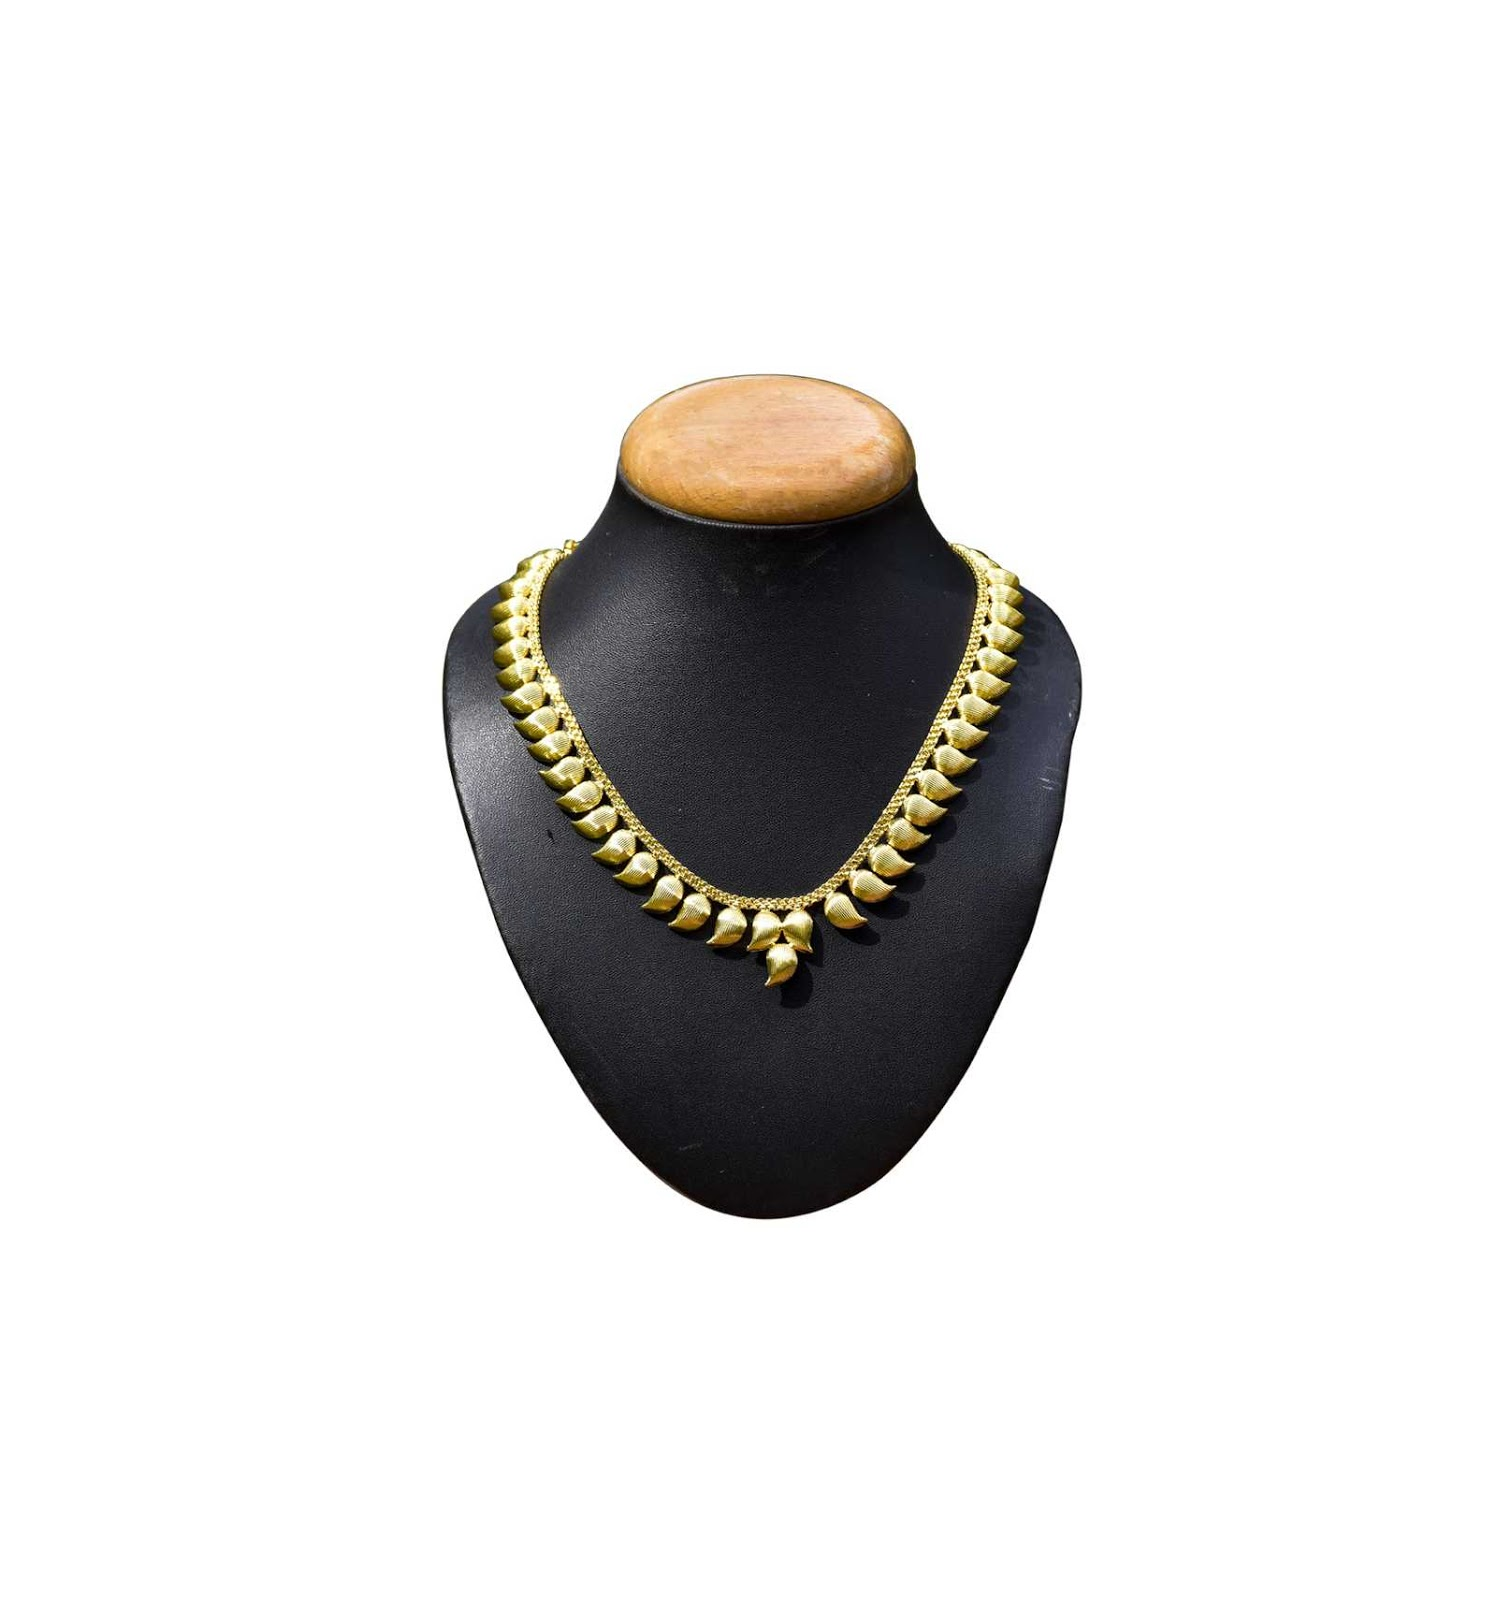 7c9e42e676b859 Buy Traditional Gold Plated Mango Design Necklace Online|Kollamsupreme:  Kerala traditional Mango necklace design necklace with Mango pendant and  adjustable ...